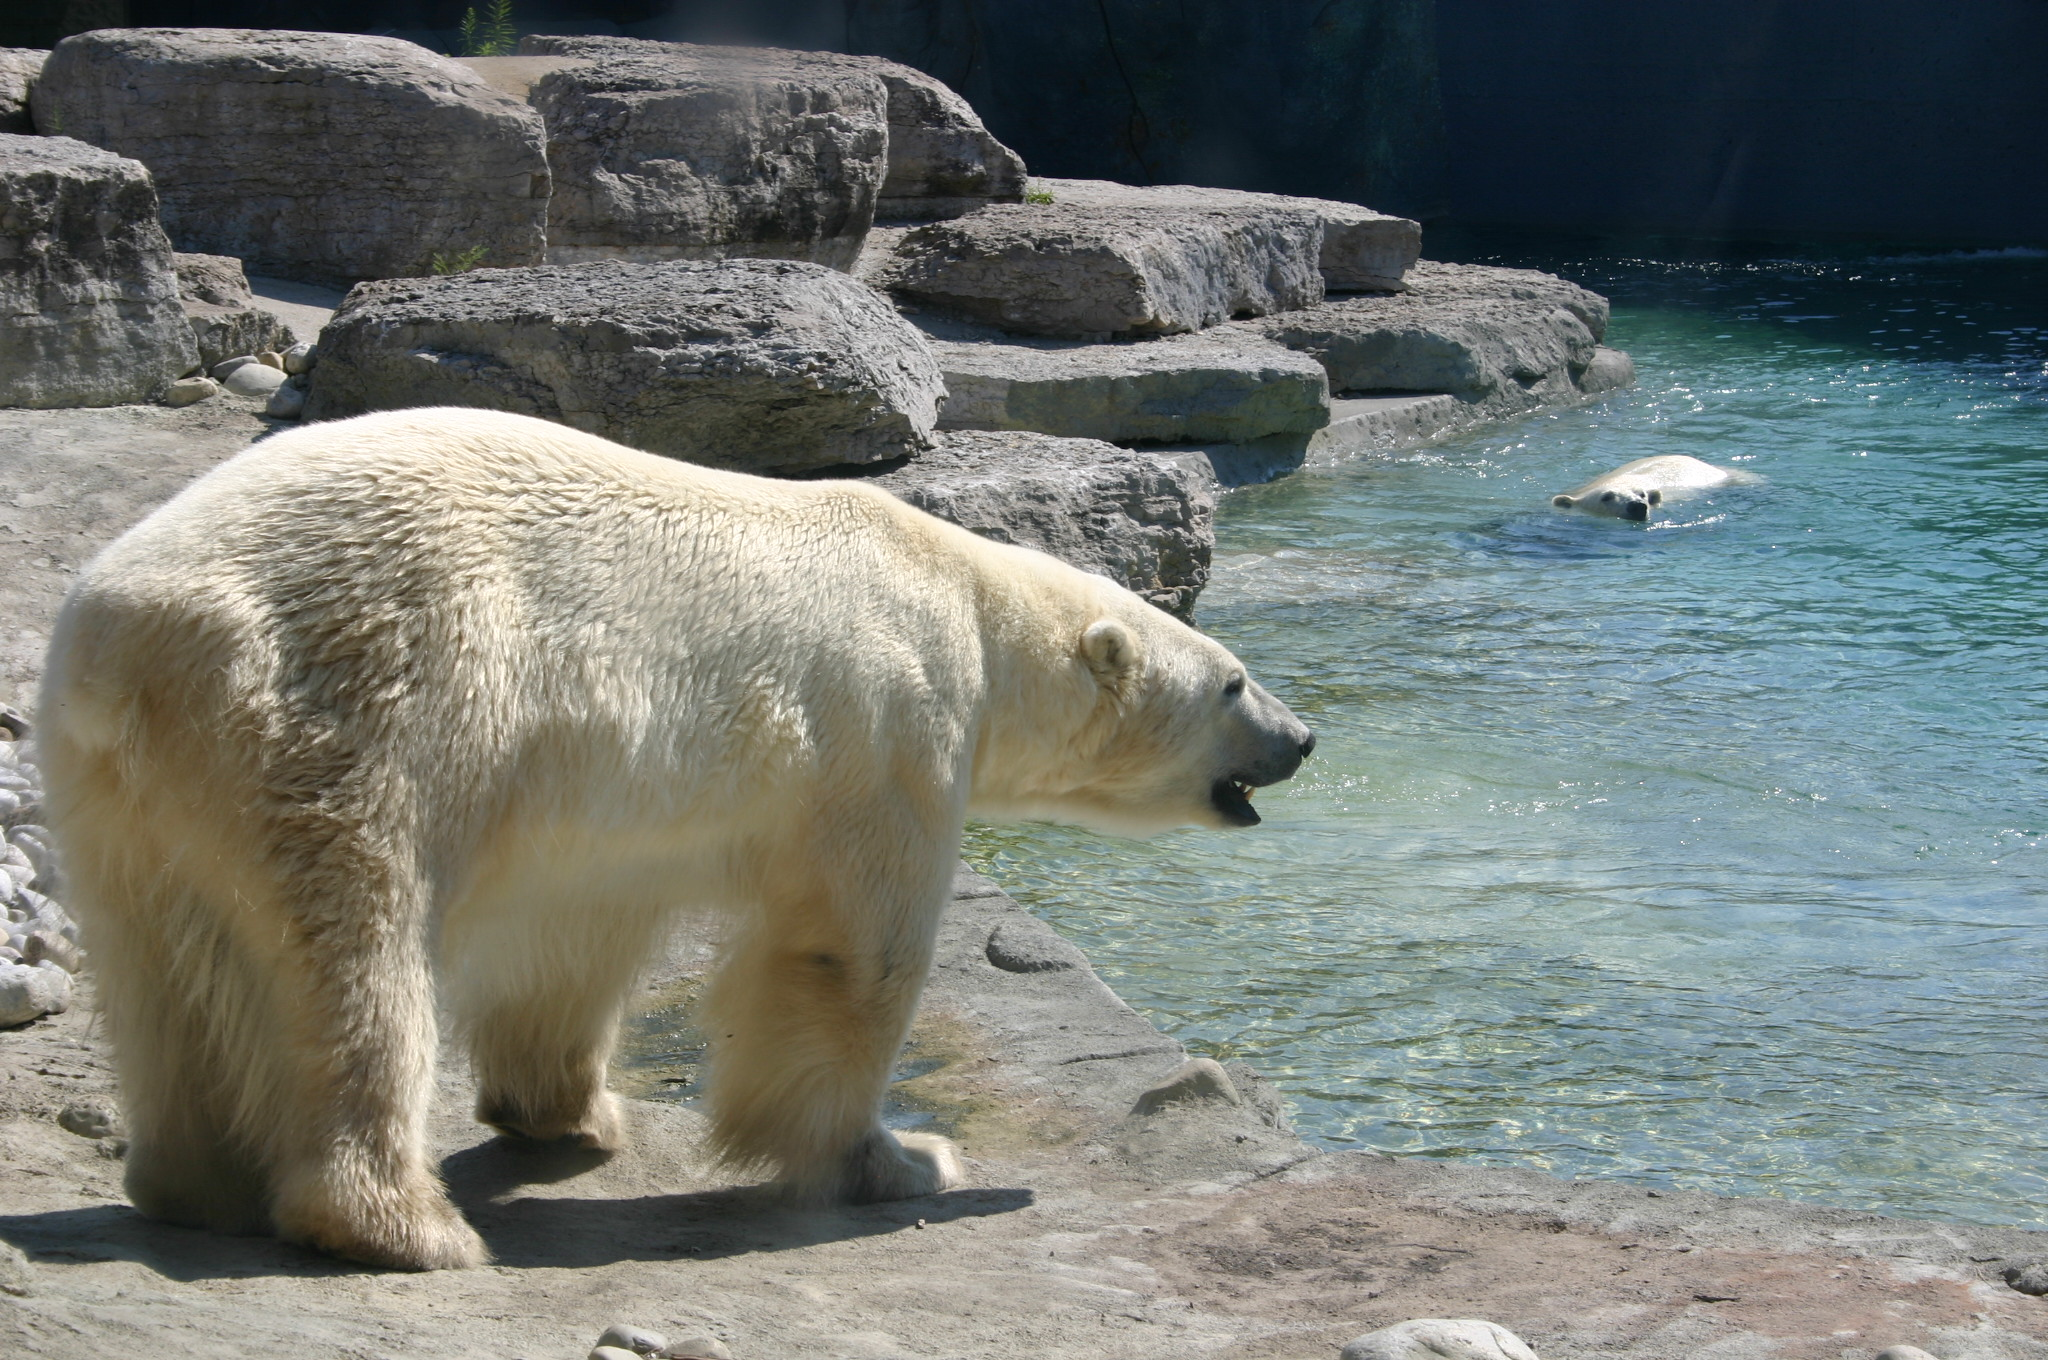 A polar bear at the Toronto Zoo